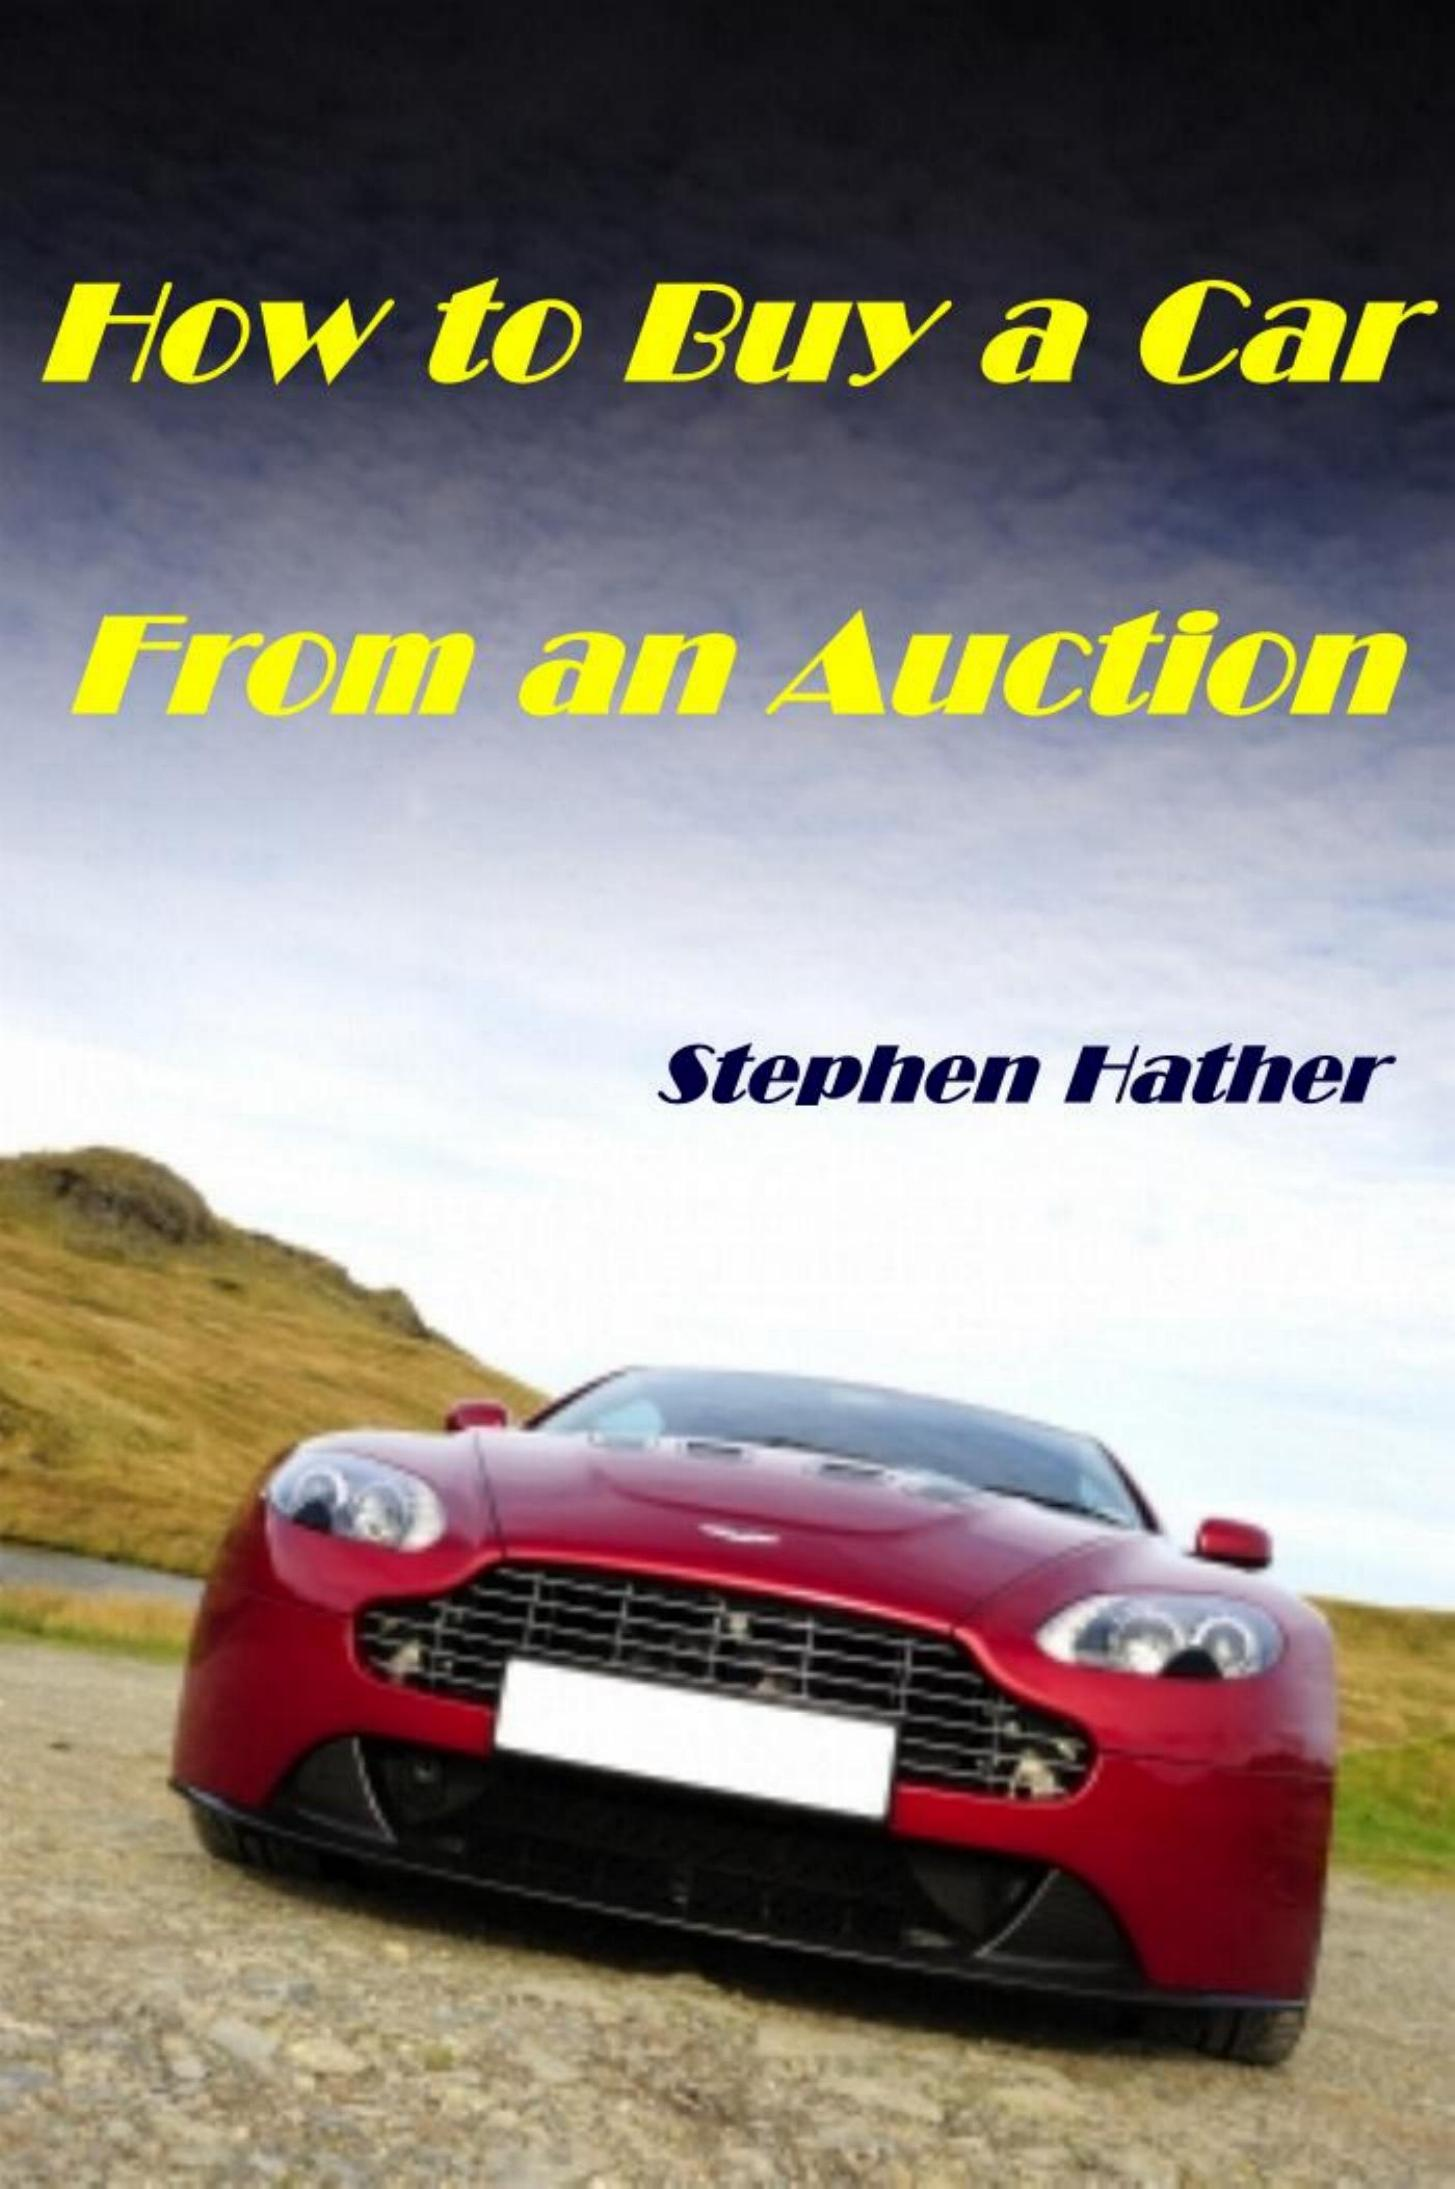 Stephen Hather - How to Buy a Car from an Auction